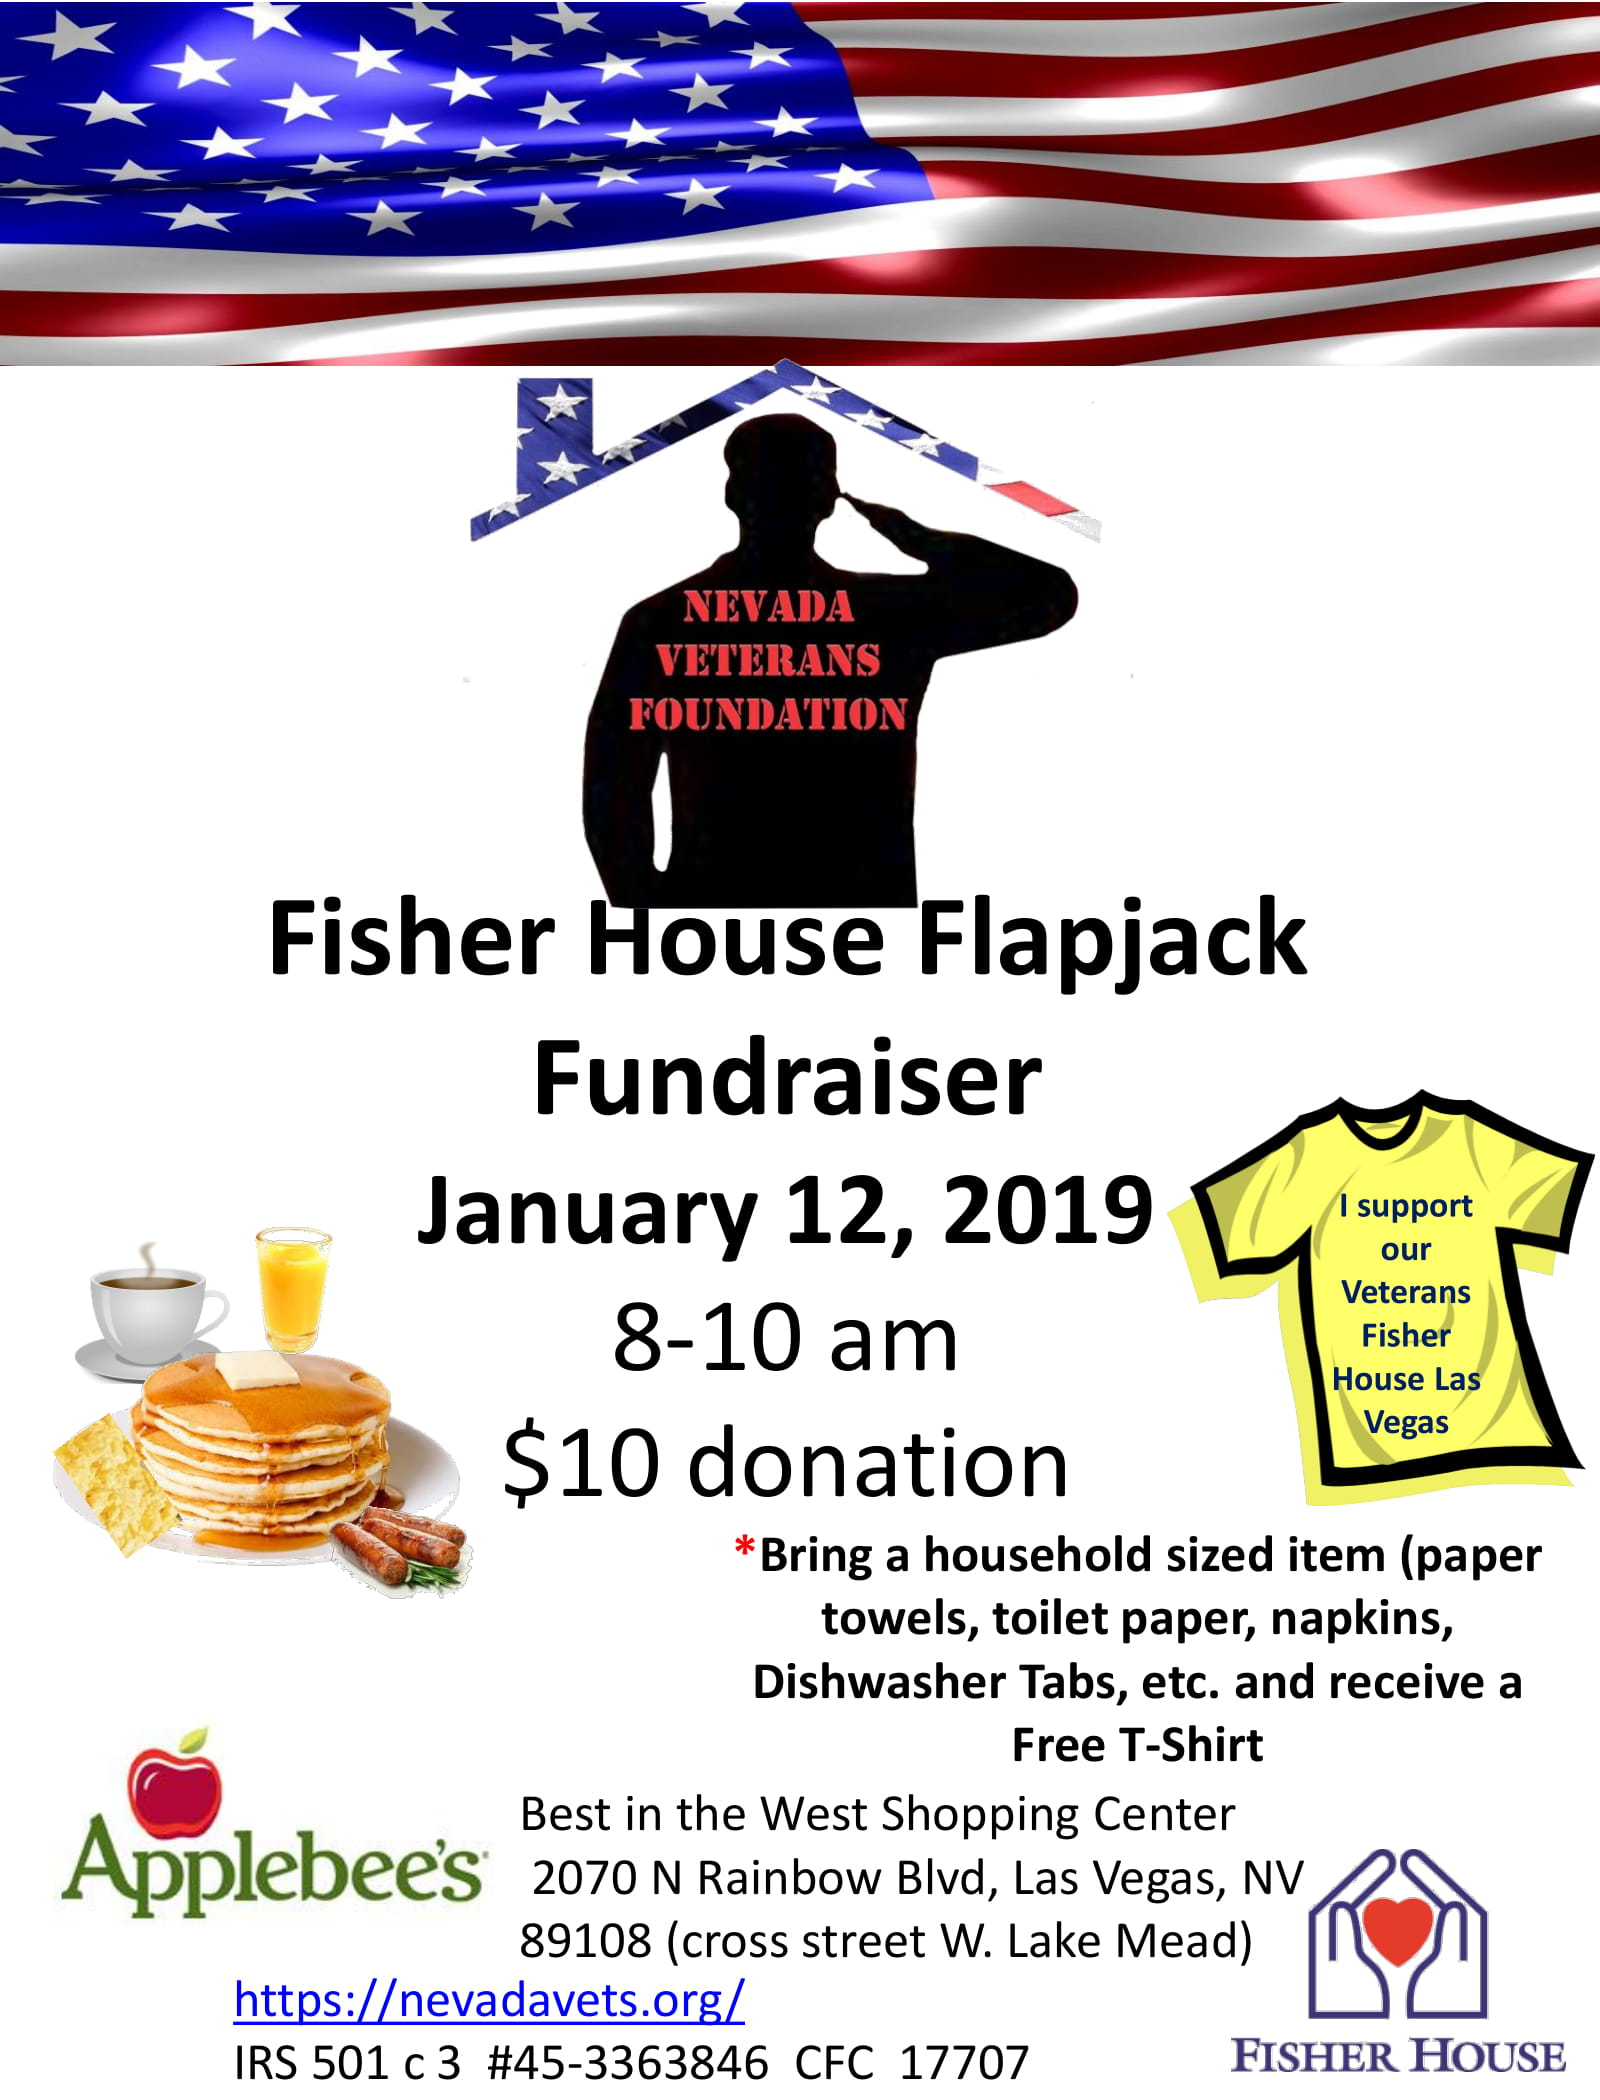 Fisher House Flapjack Fundraiser - Benefiting Nevada